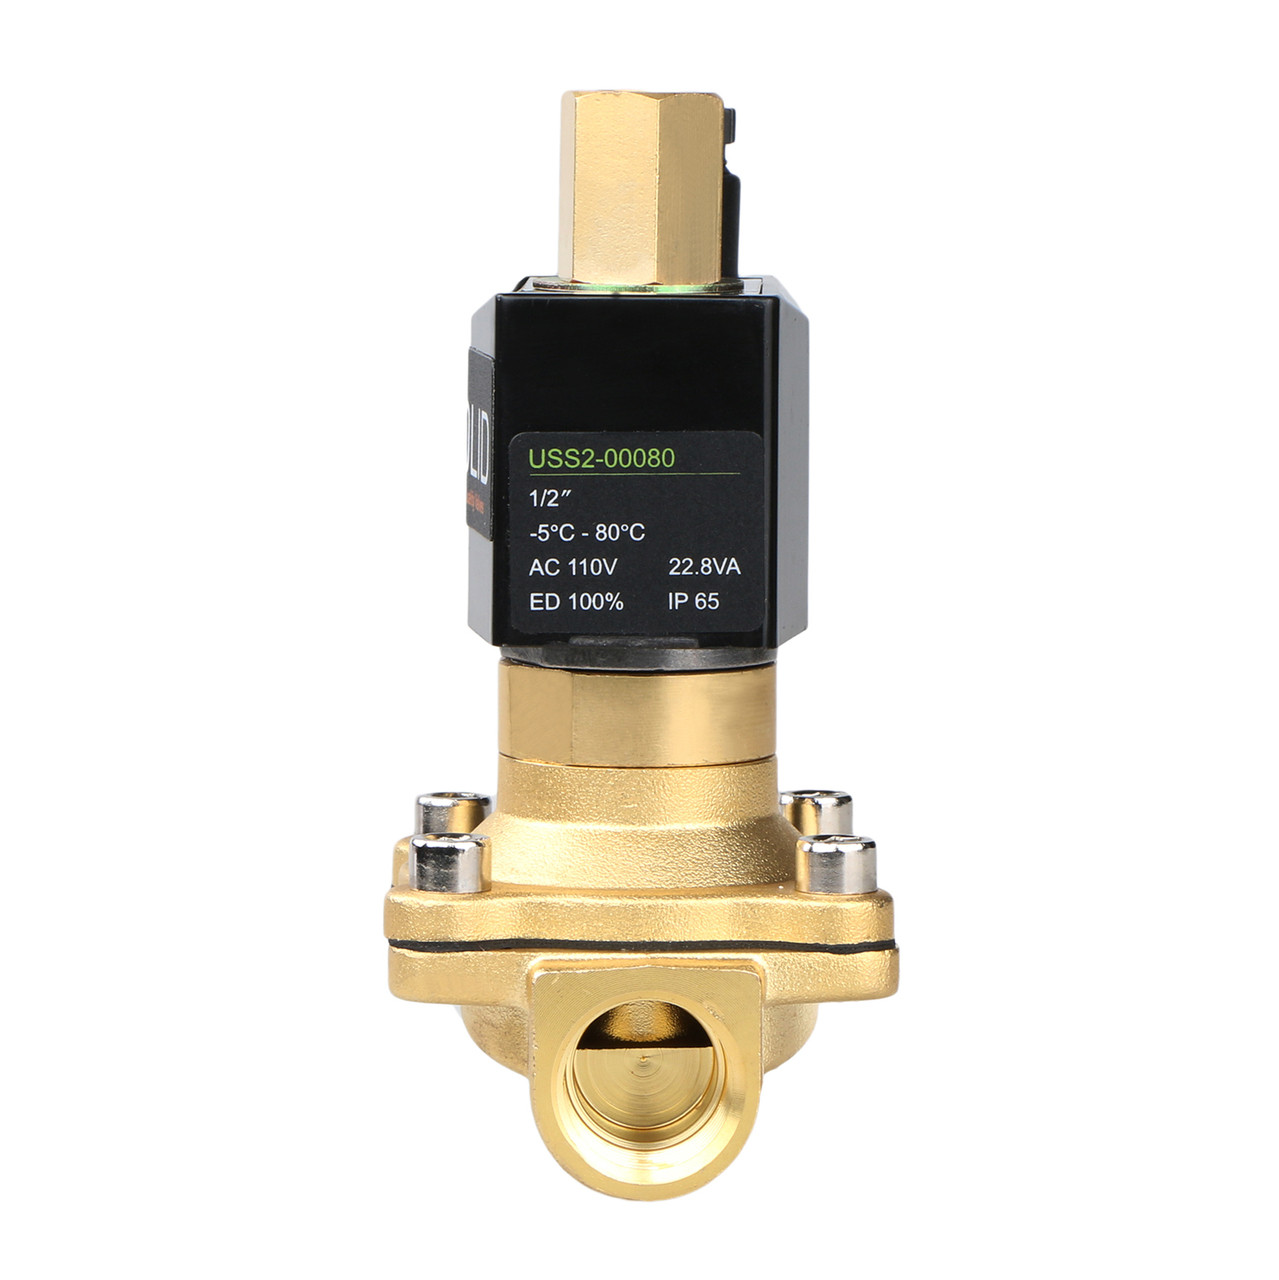 "U.S. Solid Electric Solenoid Valve- 1/2"" 110V AC Solenoid Valve Brass Body Normally Open, NBR SEAL"